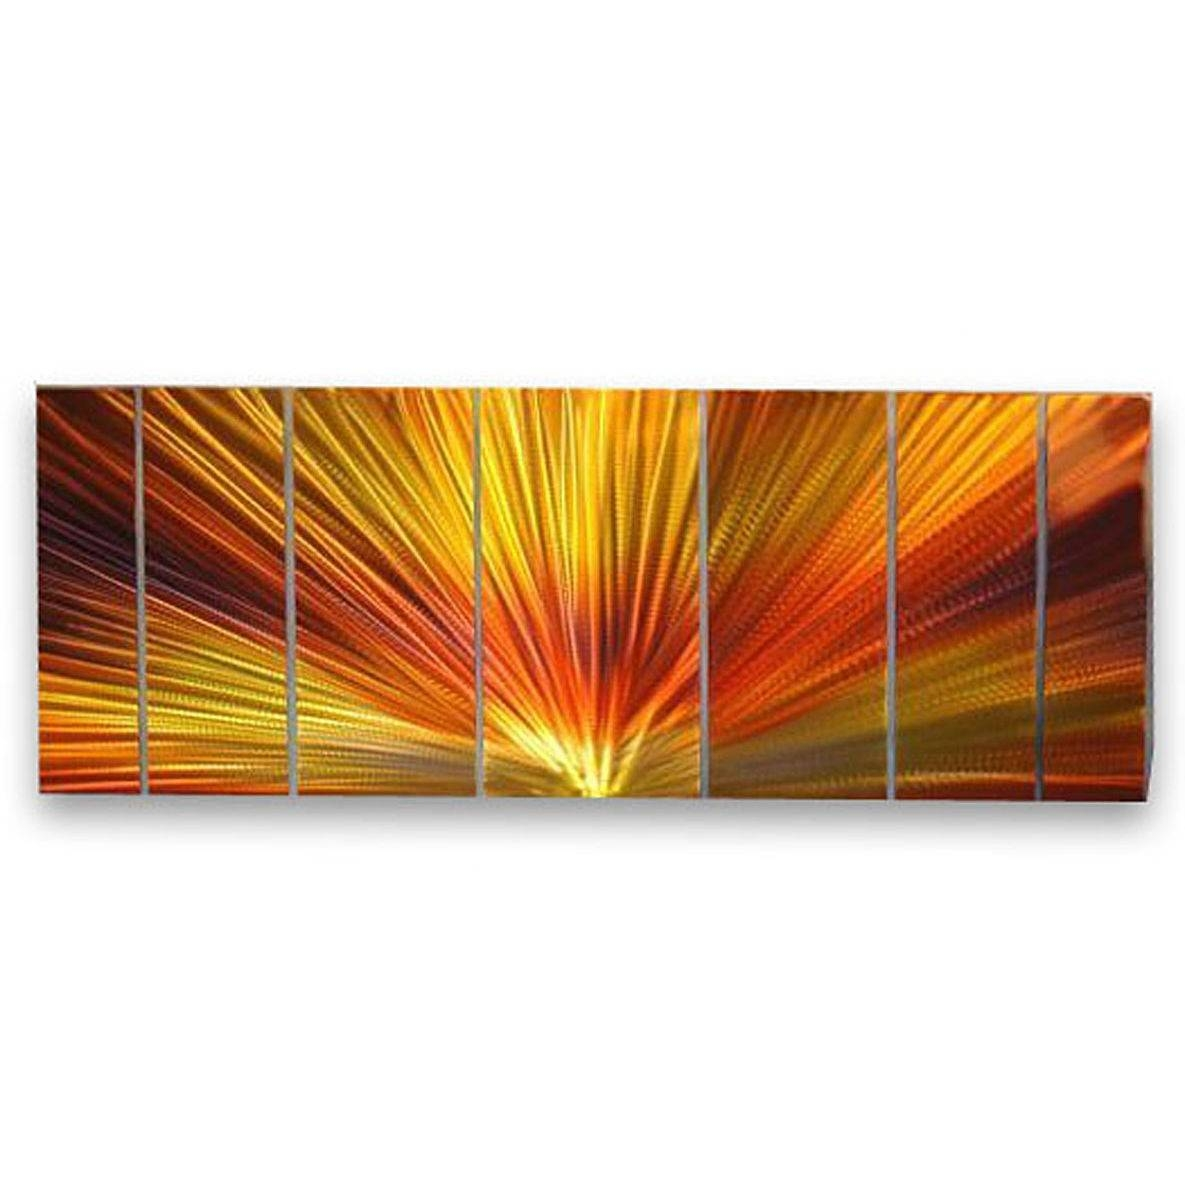 Amazing Design Orange Wall Art Lovely Ideas All My Walls Abstract Intended For Most Recently Released Ash Carl Metal Wall Art (View 3 of 30)